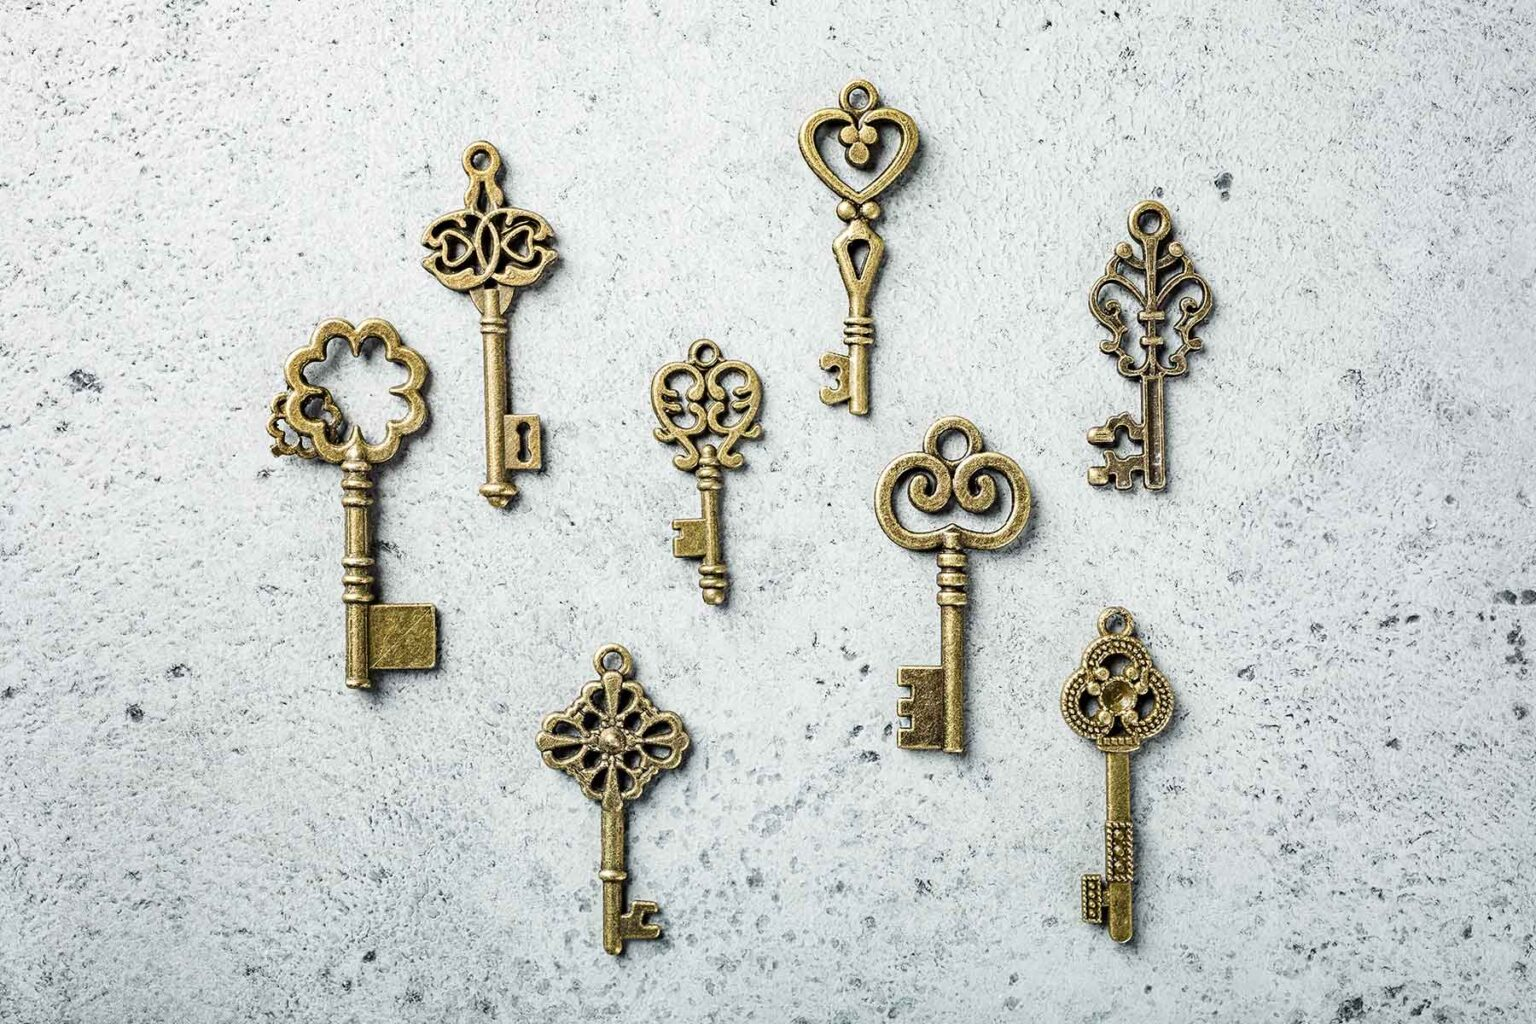 overhead-shoot-of-many-different-old-keys-58R8LAC.jpg